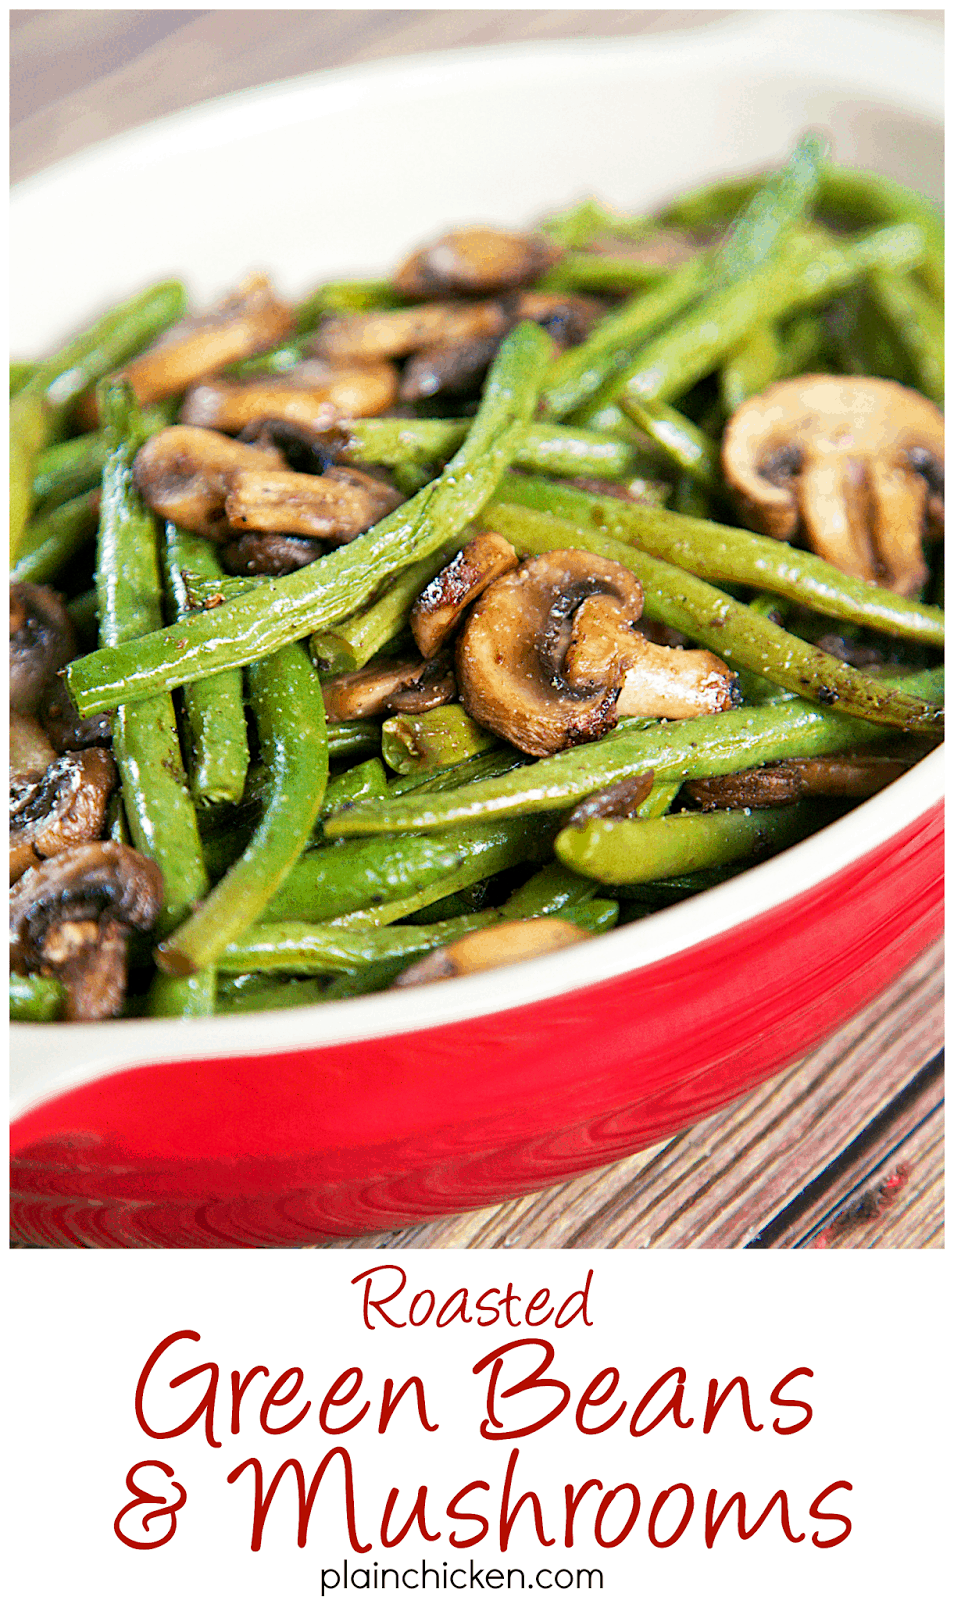 Roasted Green Beans and Mushrooms Recipe - fresh green beans and mushrooms tossed in olive oil, balsamic, garlic salt, pepper and baked. SO simple and SOOO delicious! Ready in about 20 minutes.